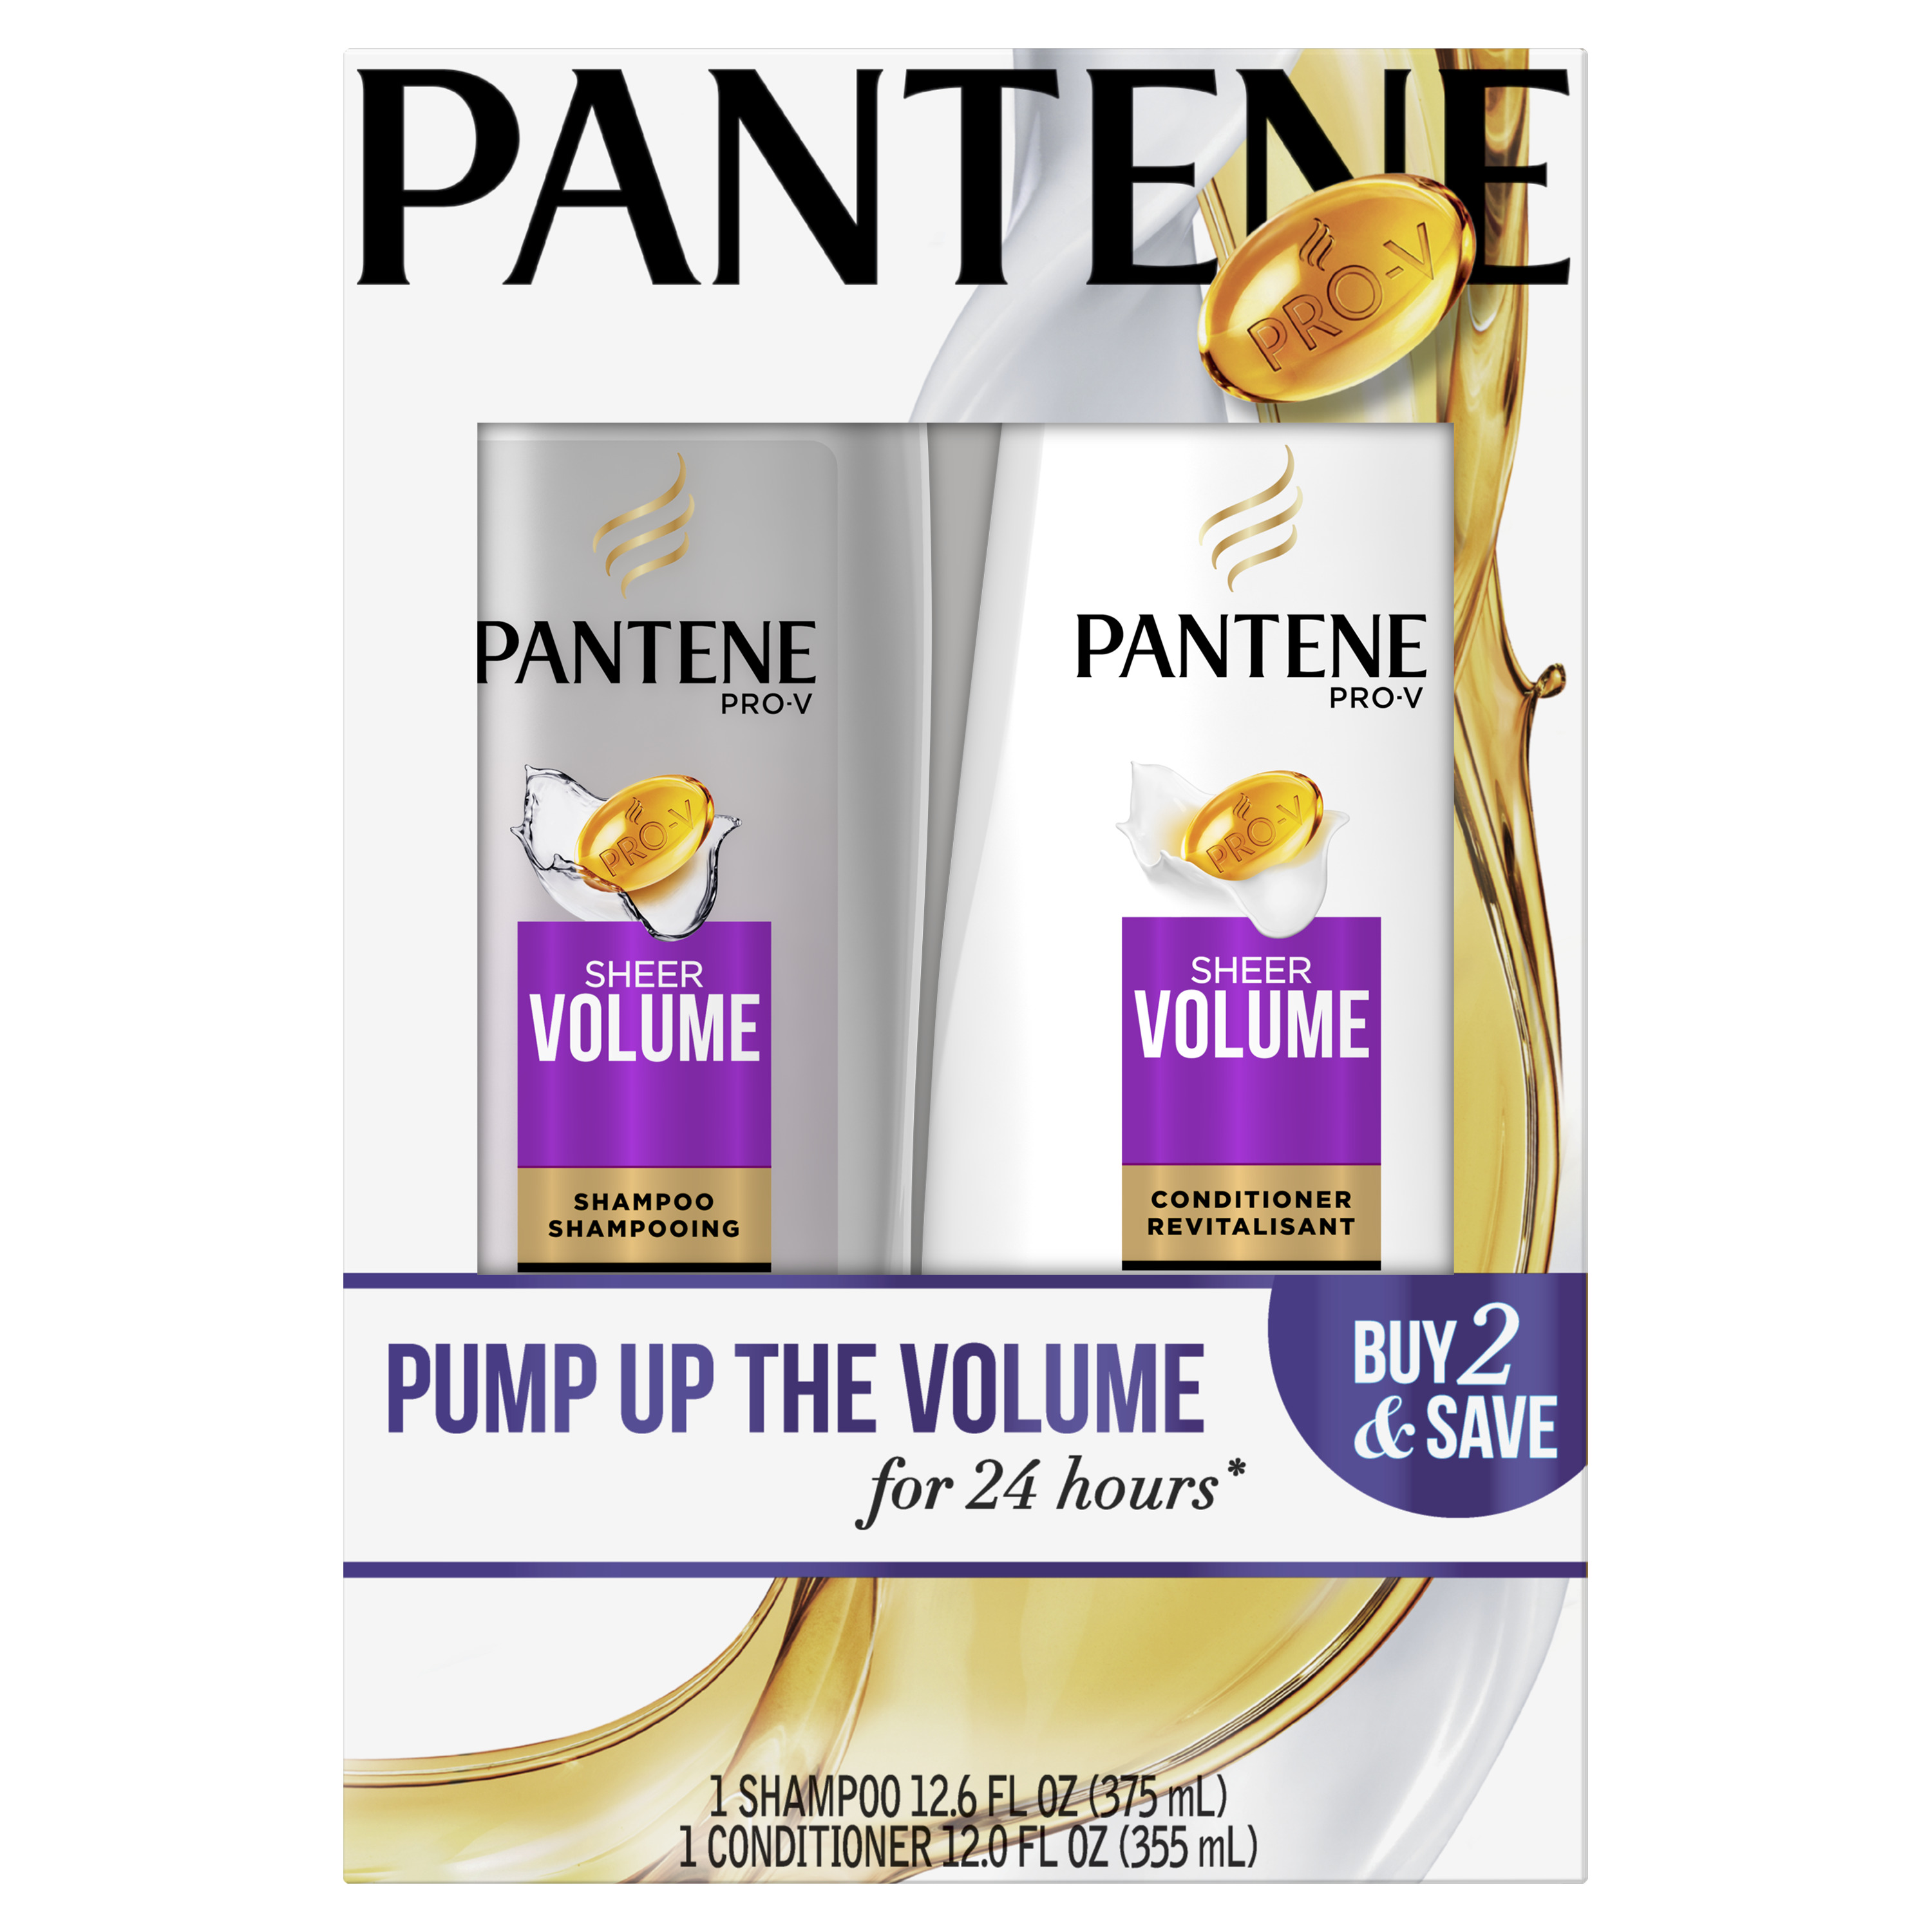 Pantene Pro-V Sheer Volume Shampoo and Conditioner Dual Pack, 24.6 fl oz